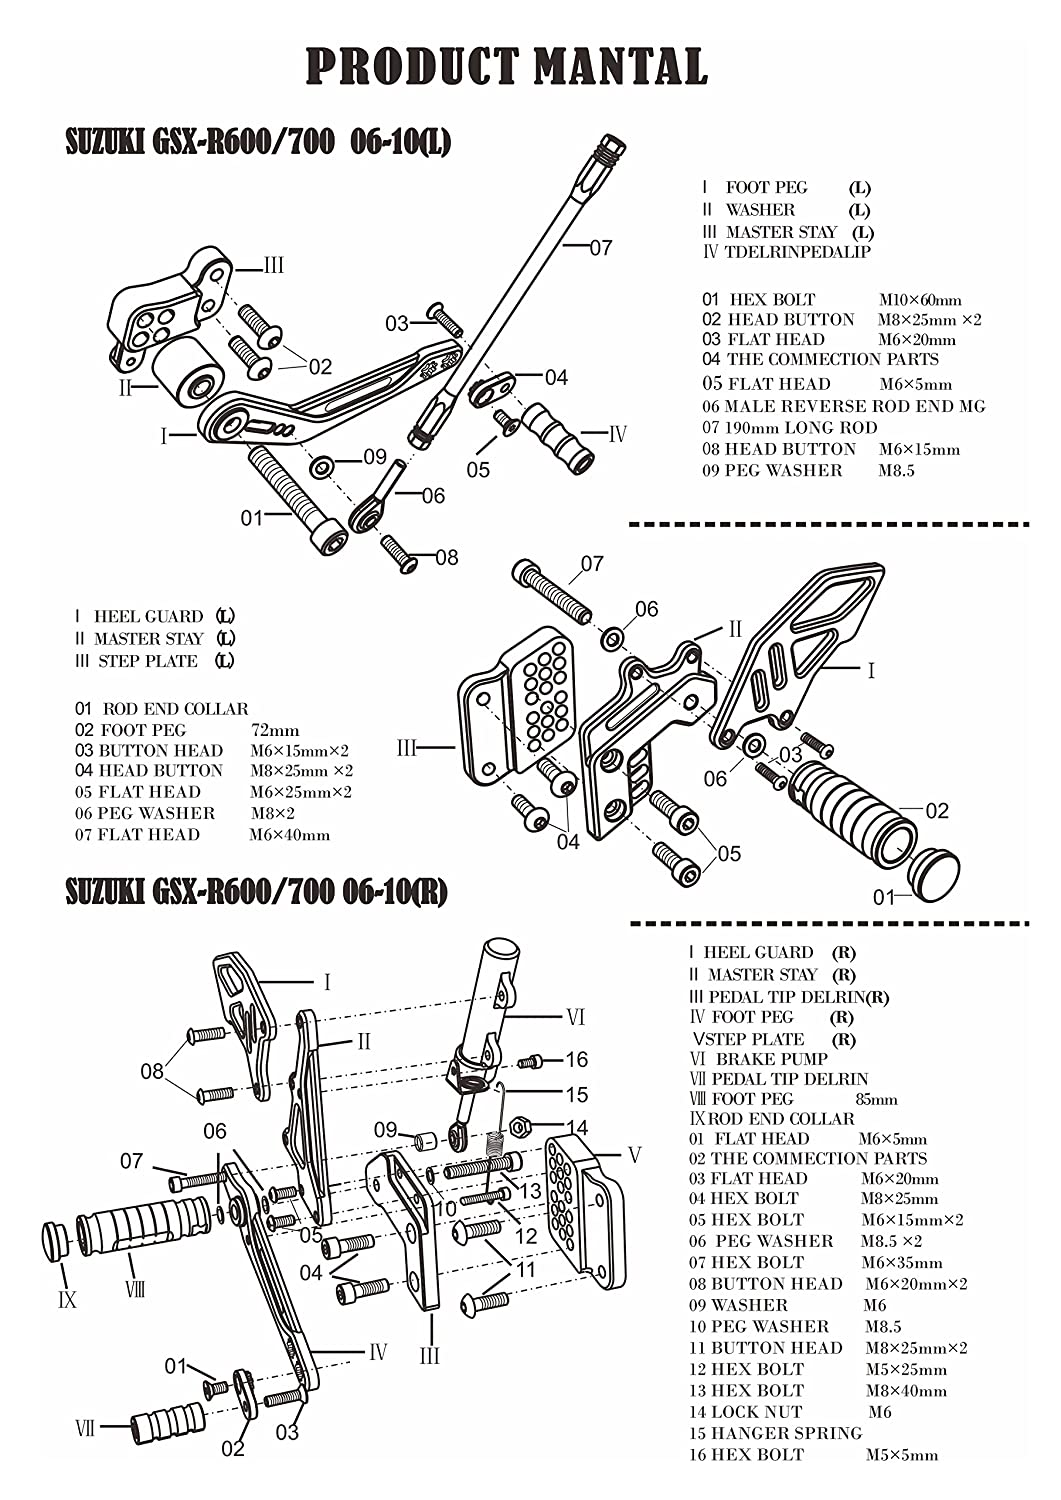 NEVERLAND Motorcycle CNC Adjustable Rearsets Footpegs Rear Sets for Suzuki GSXR600 GSXR750 2006 2007 2008 2009 2010 Red